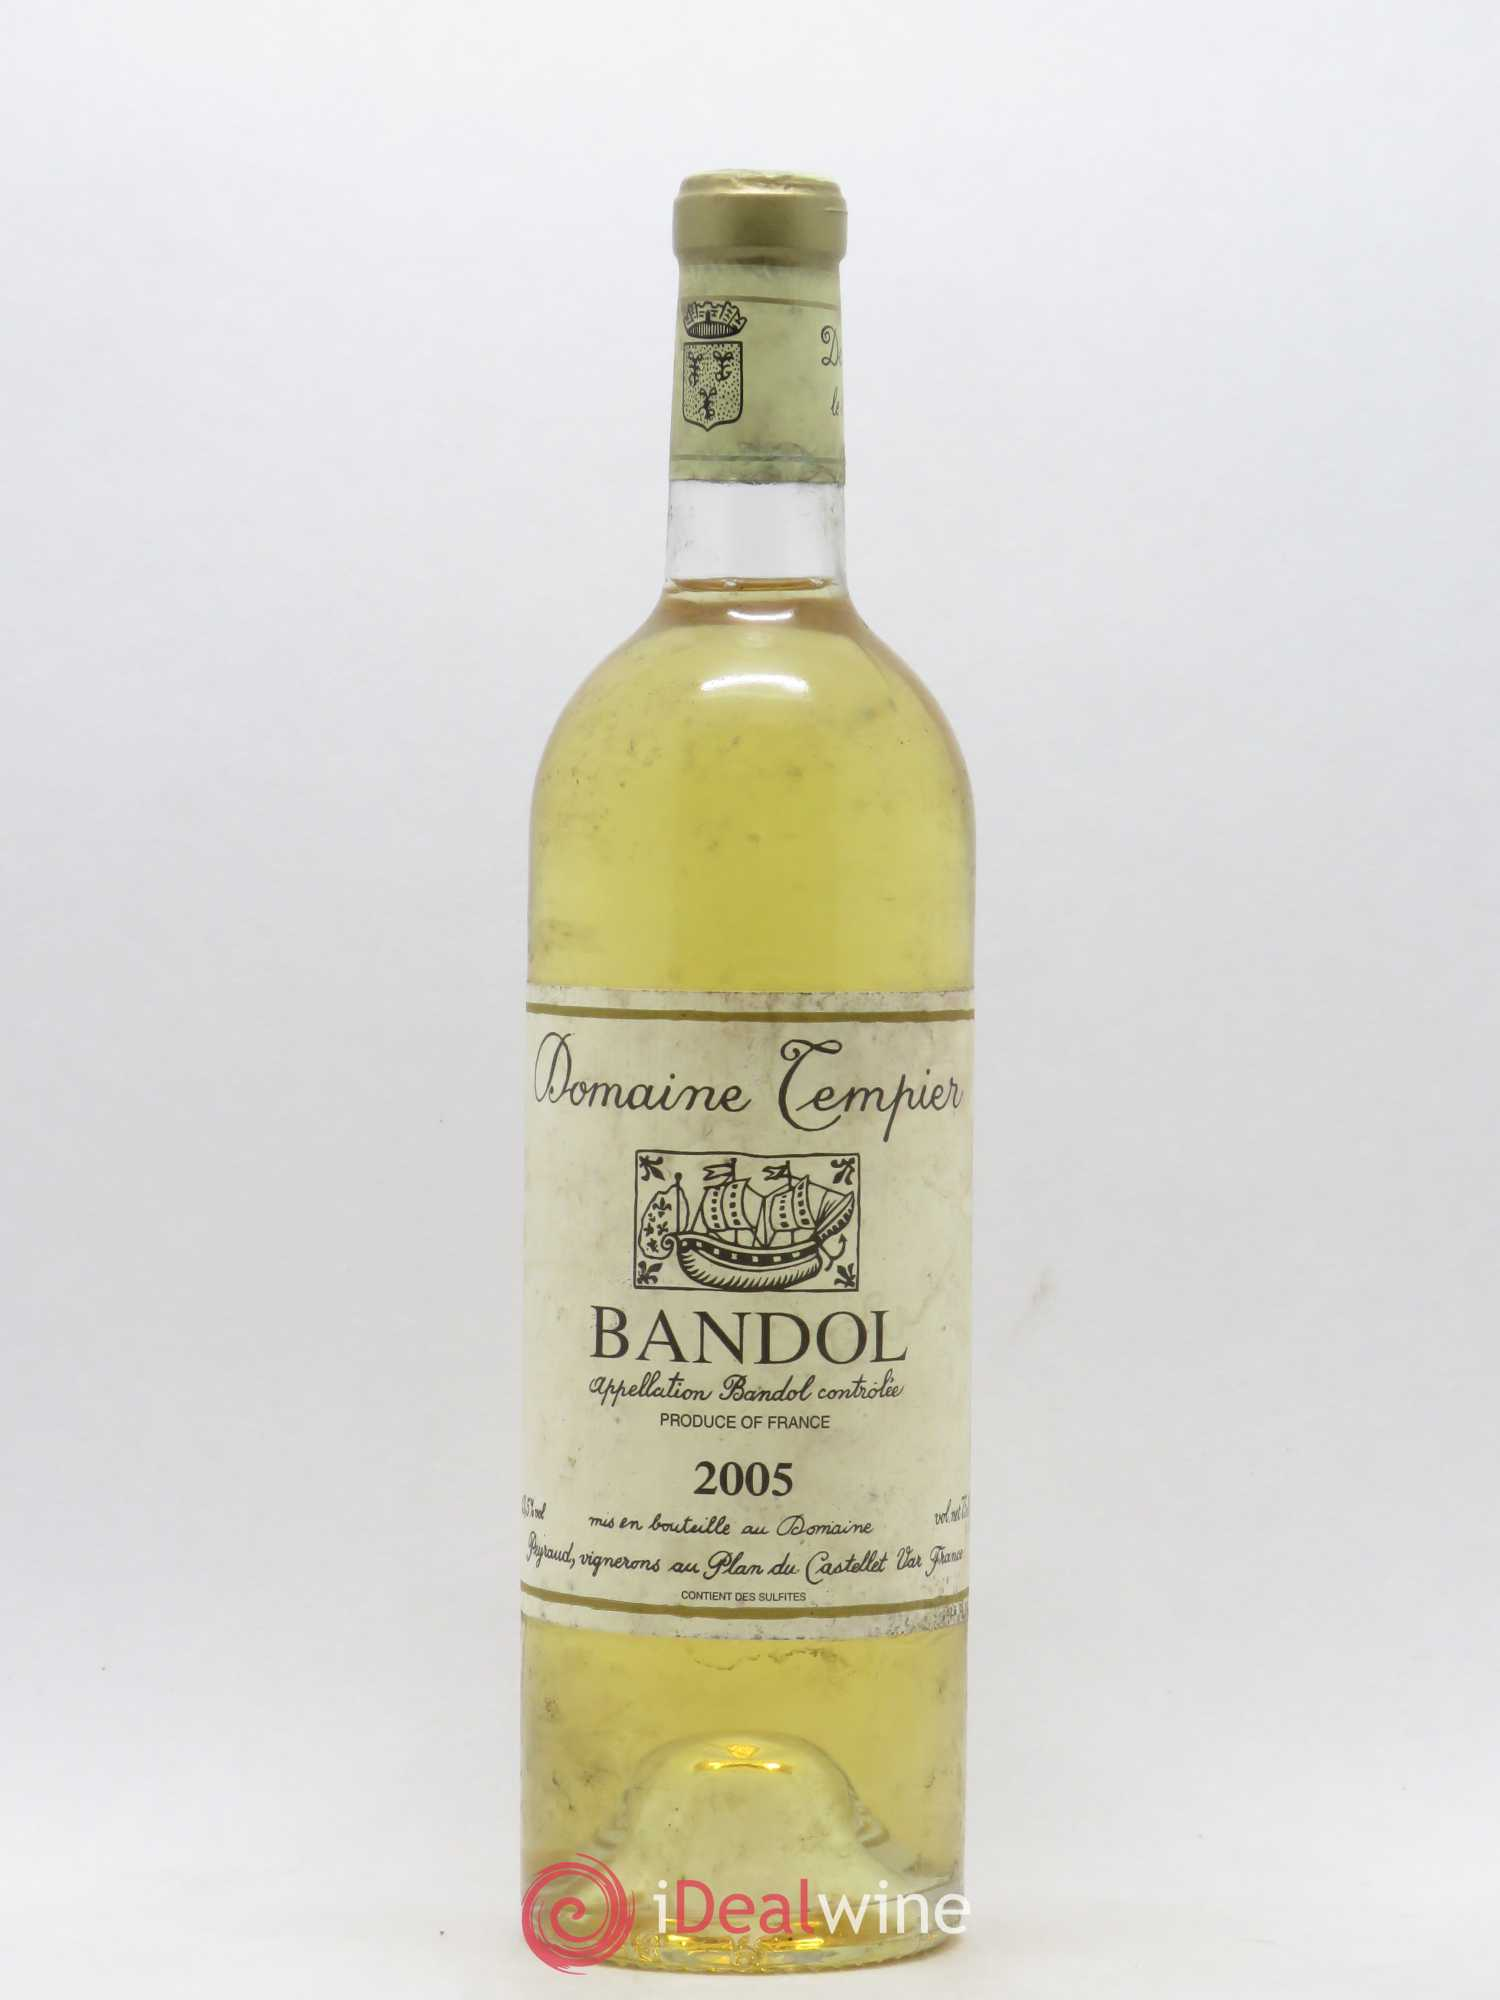 Bandol Domaine Tempier Famille Peyraud  2005 - Lot of 1 Bottle